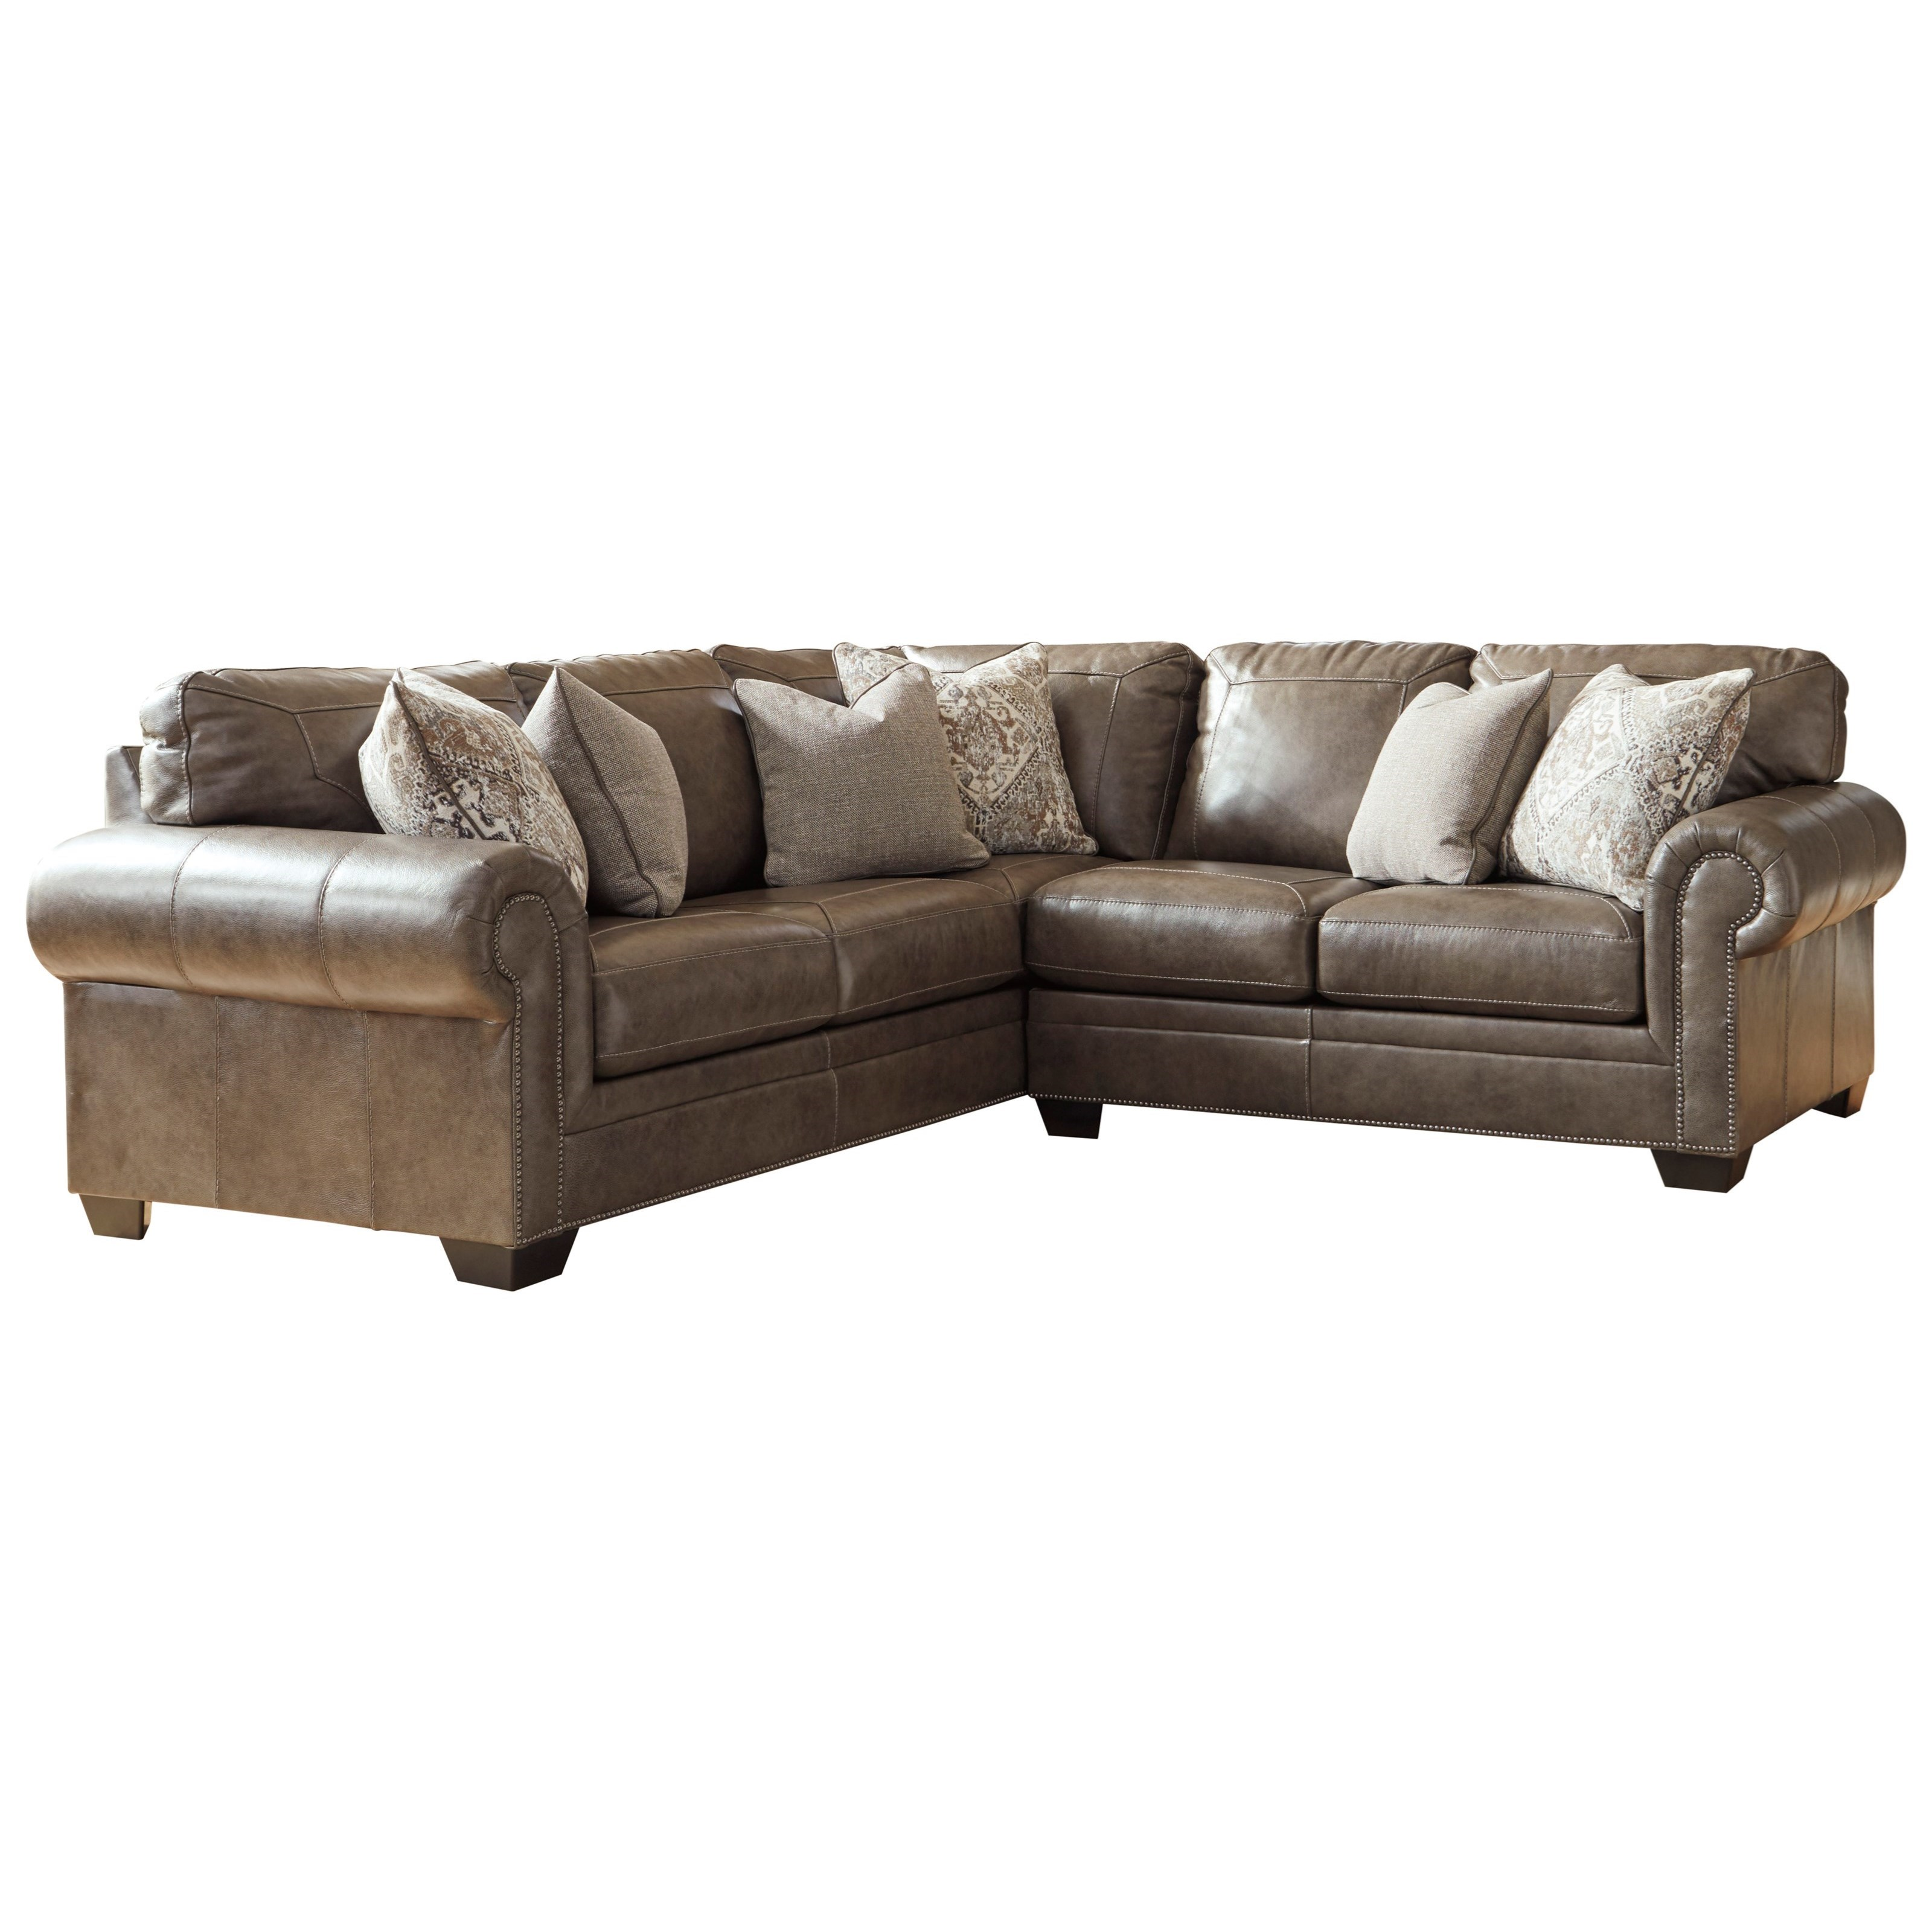 Roleson 2-Piece Sectional by Signature Design by Ashley at Gill Brothers Furniture